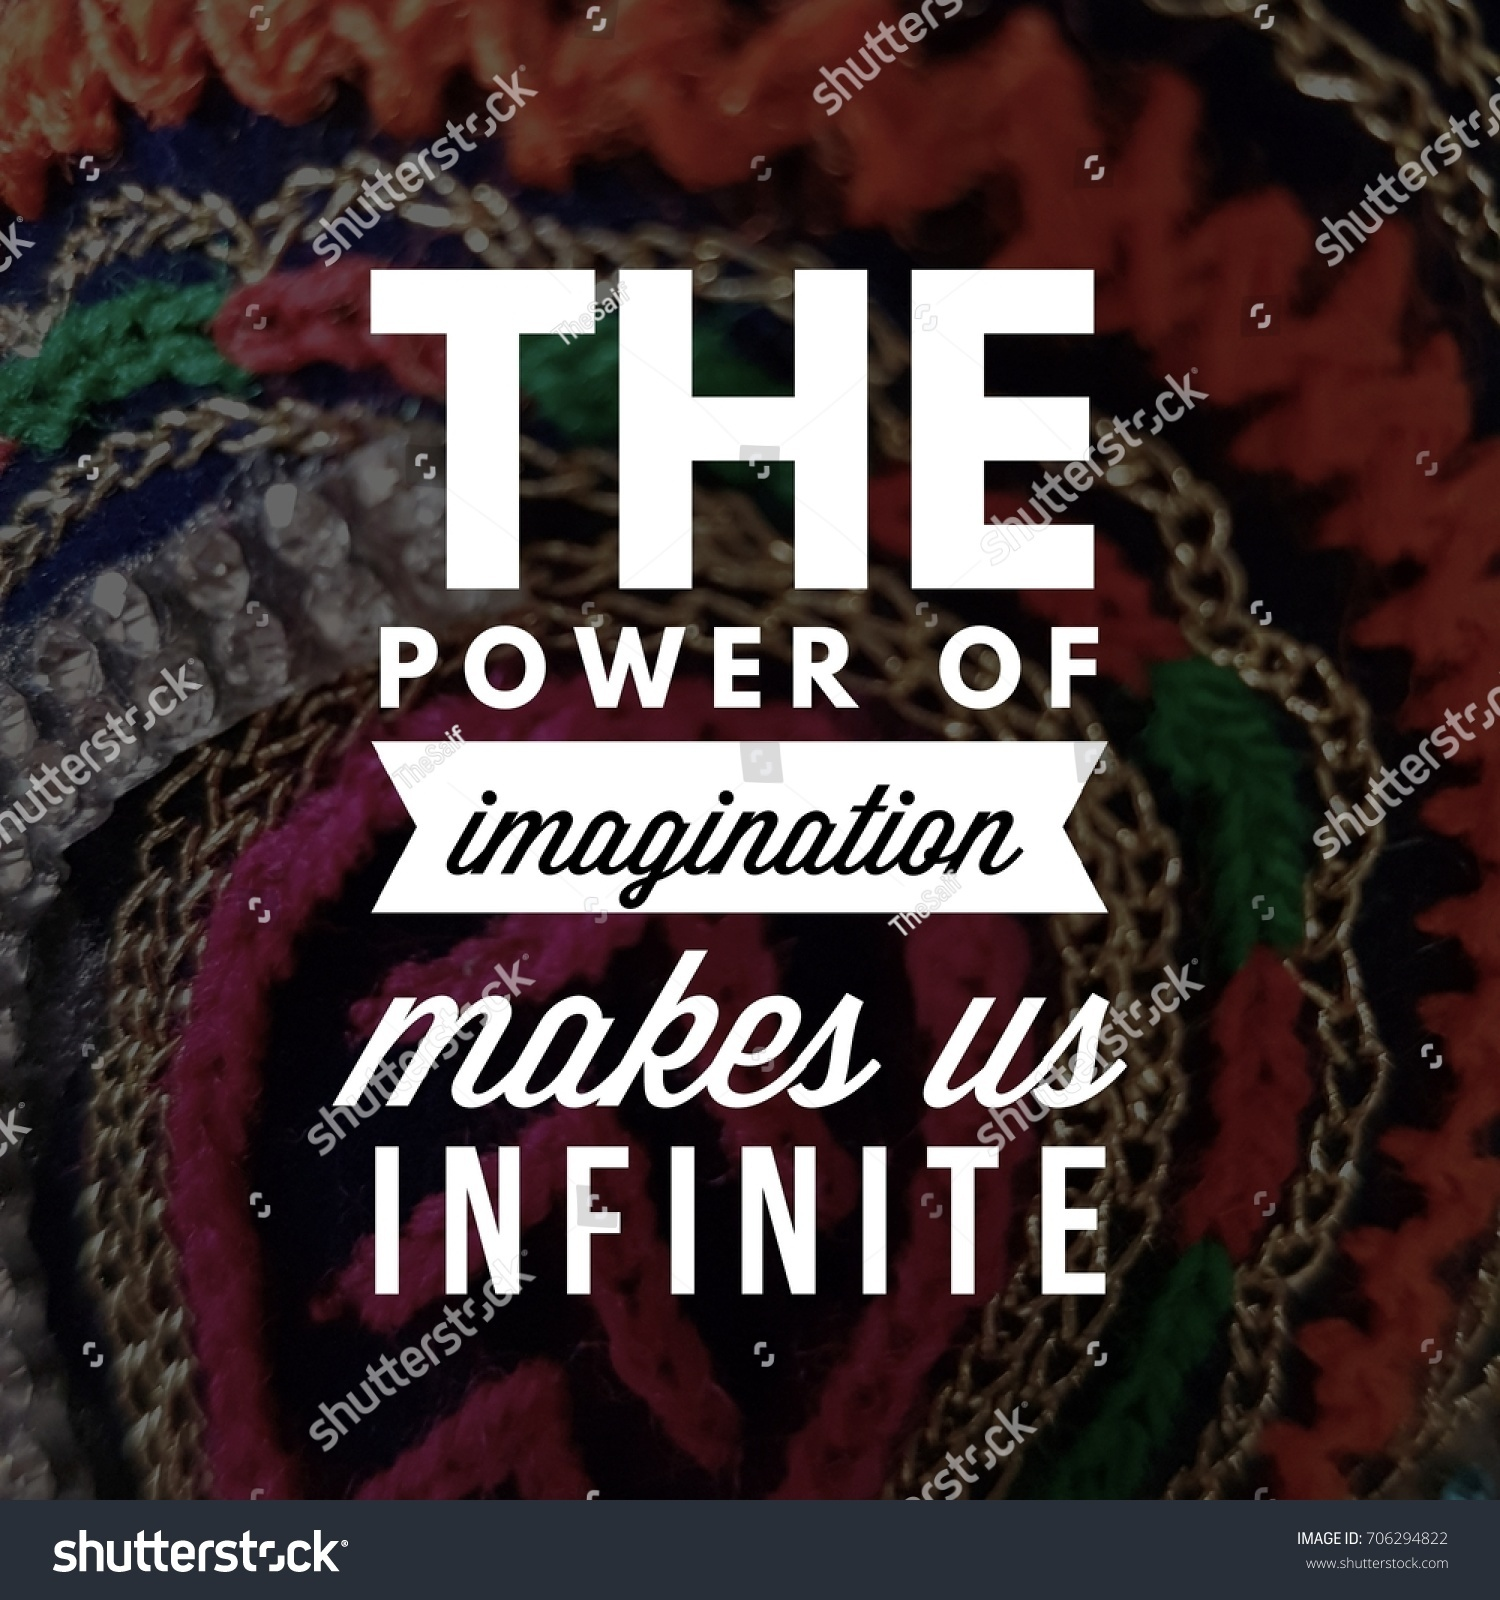 Quotes On Power Quote Power Imagination Makes Us Infinite Stock Photo 706294822